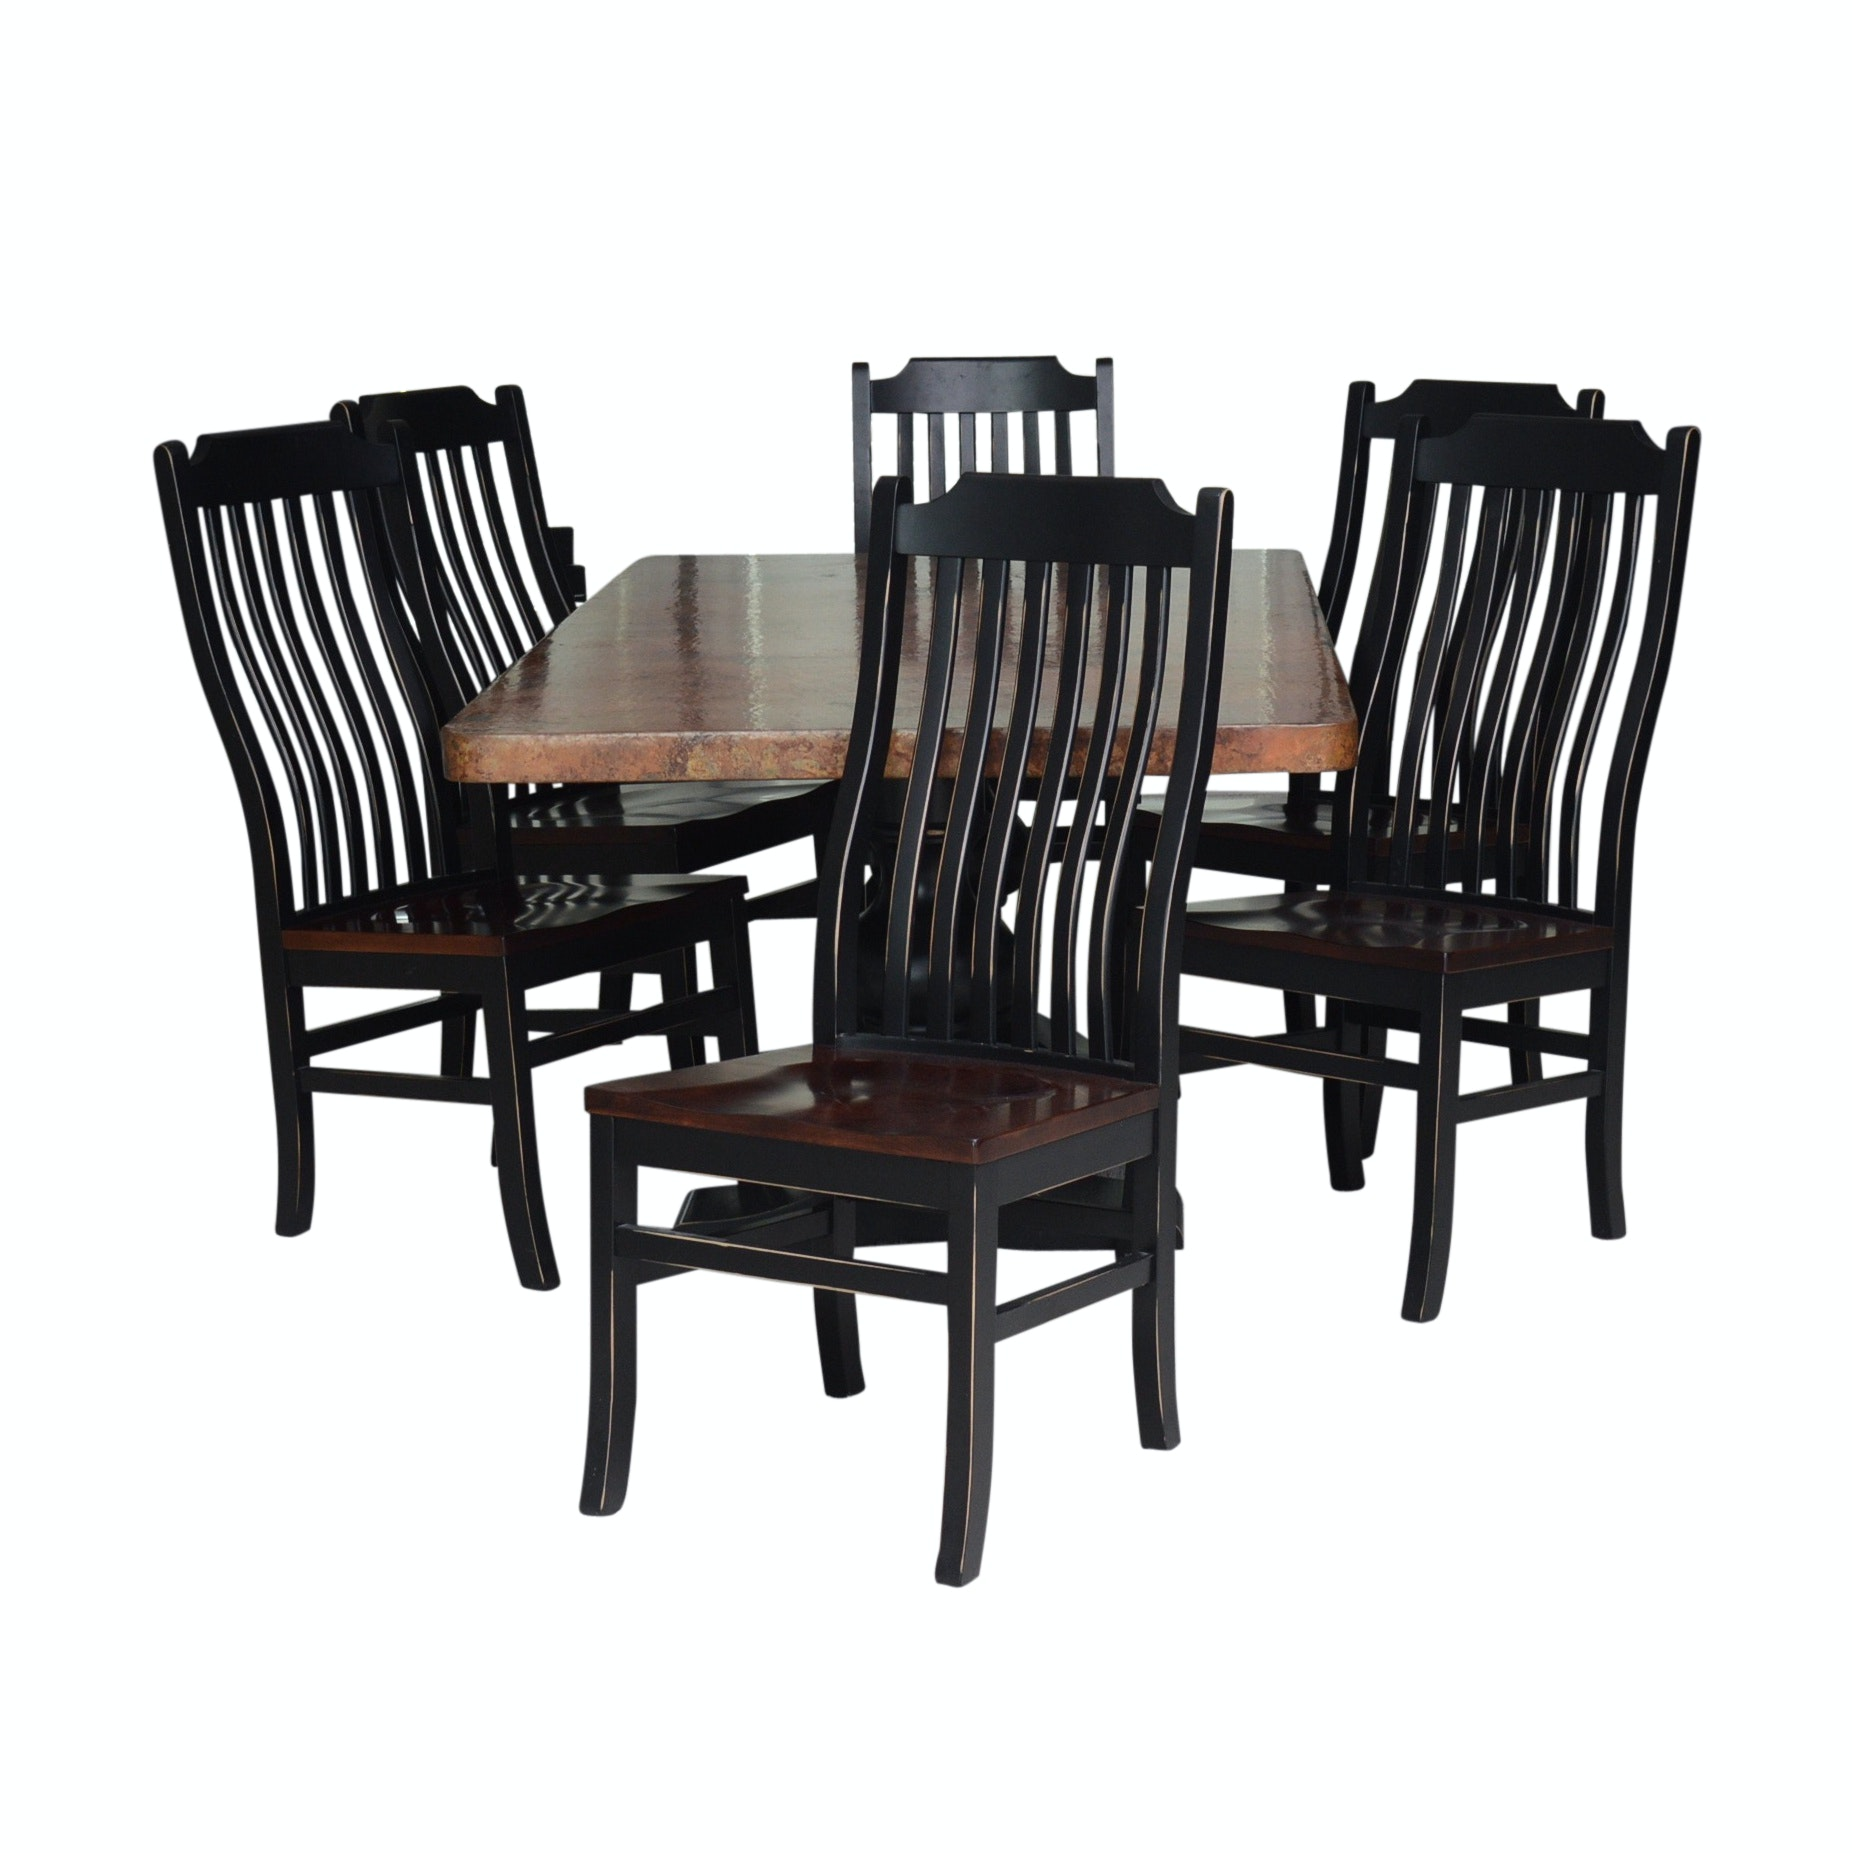 Hammer Copper Wrapped Dining Table and Chairs